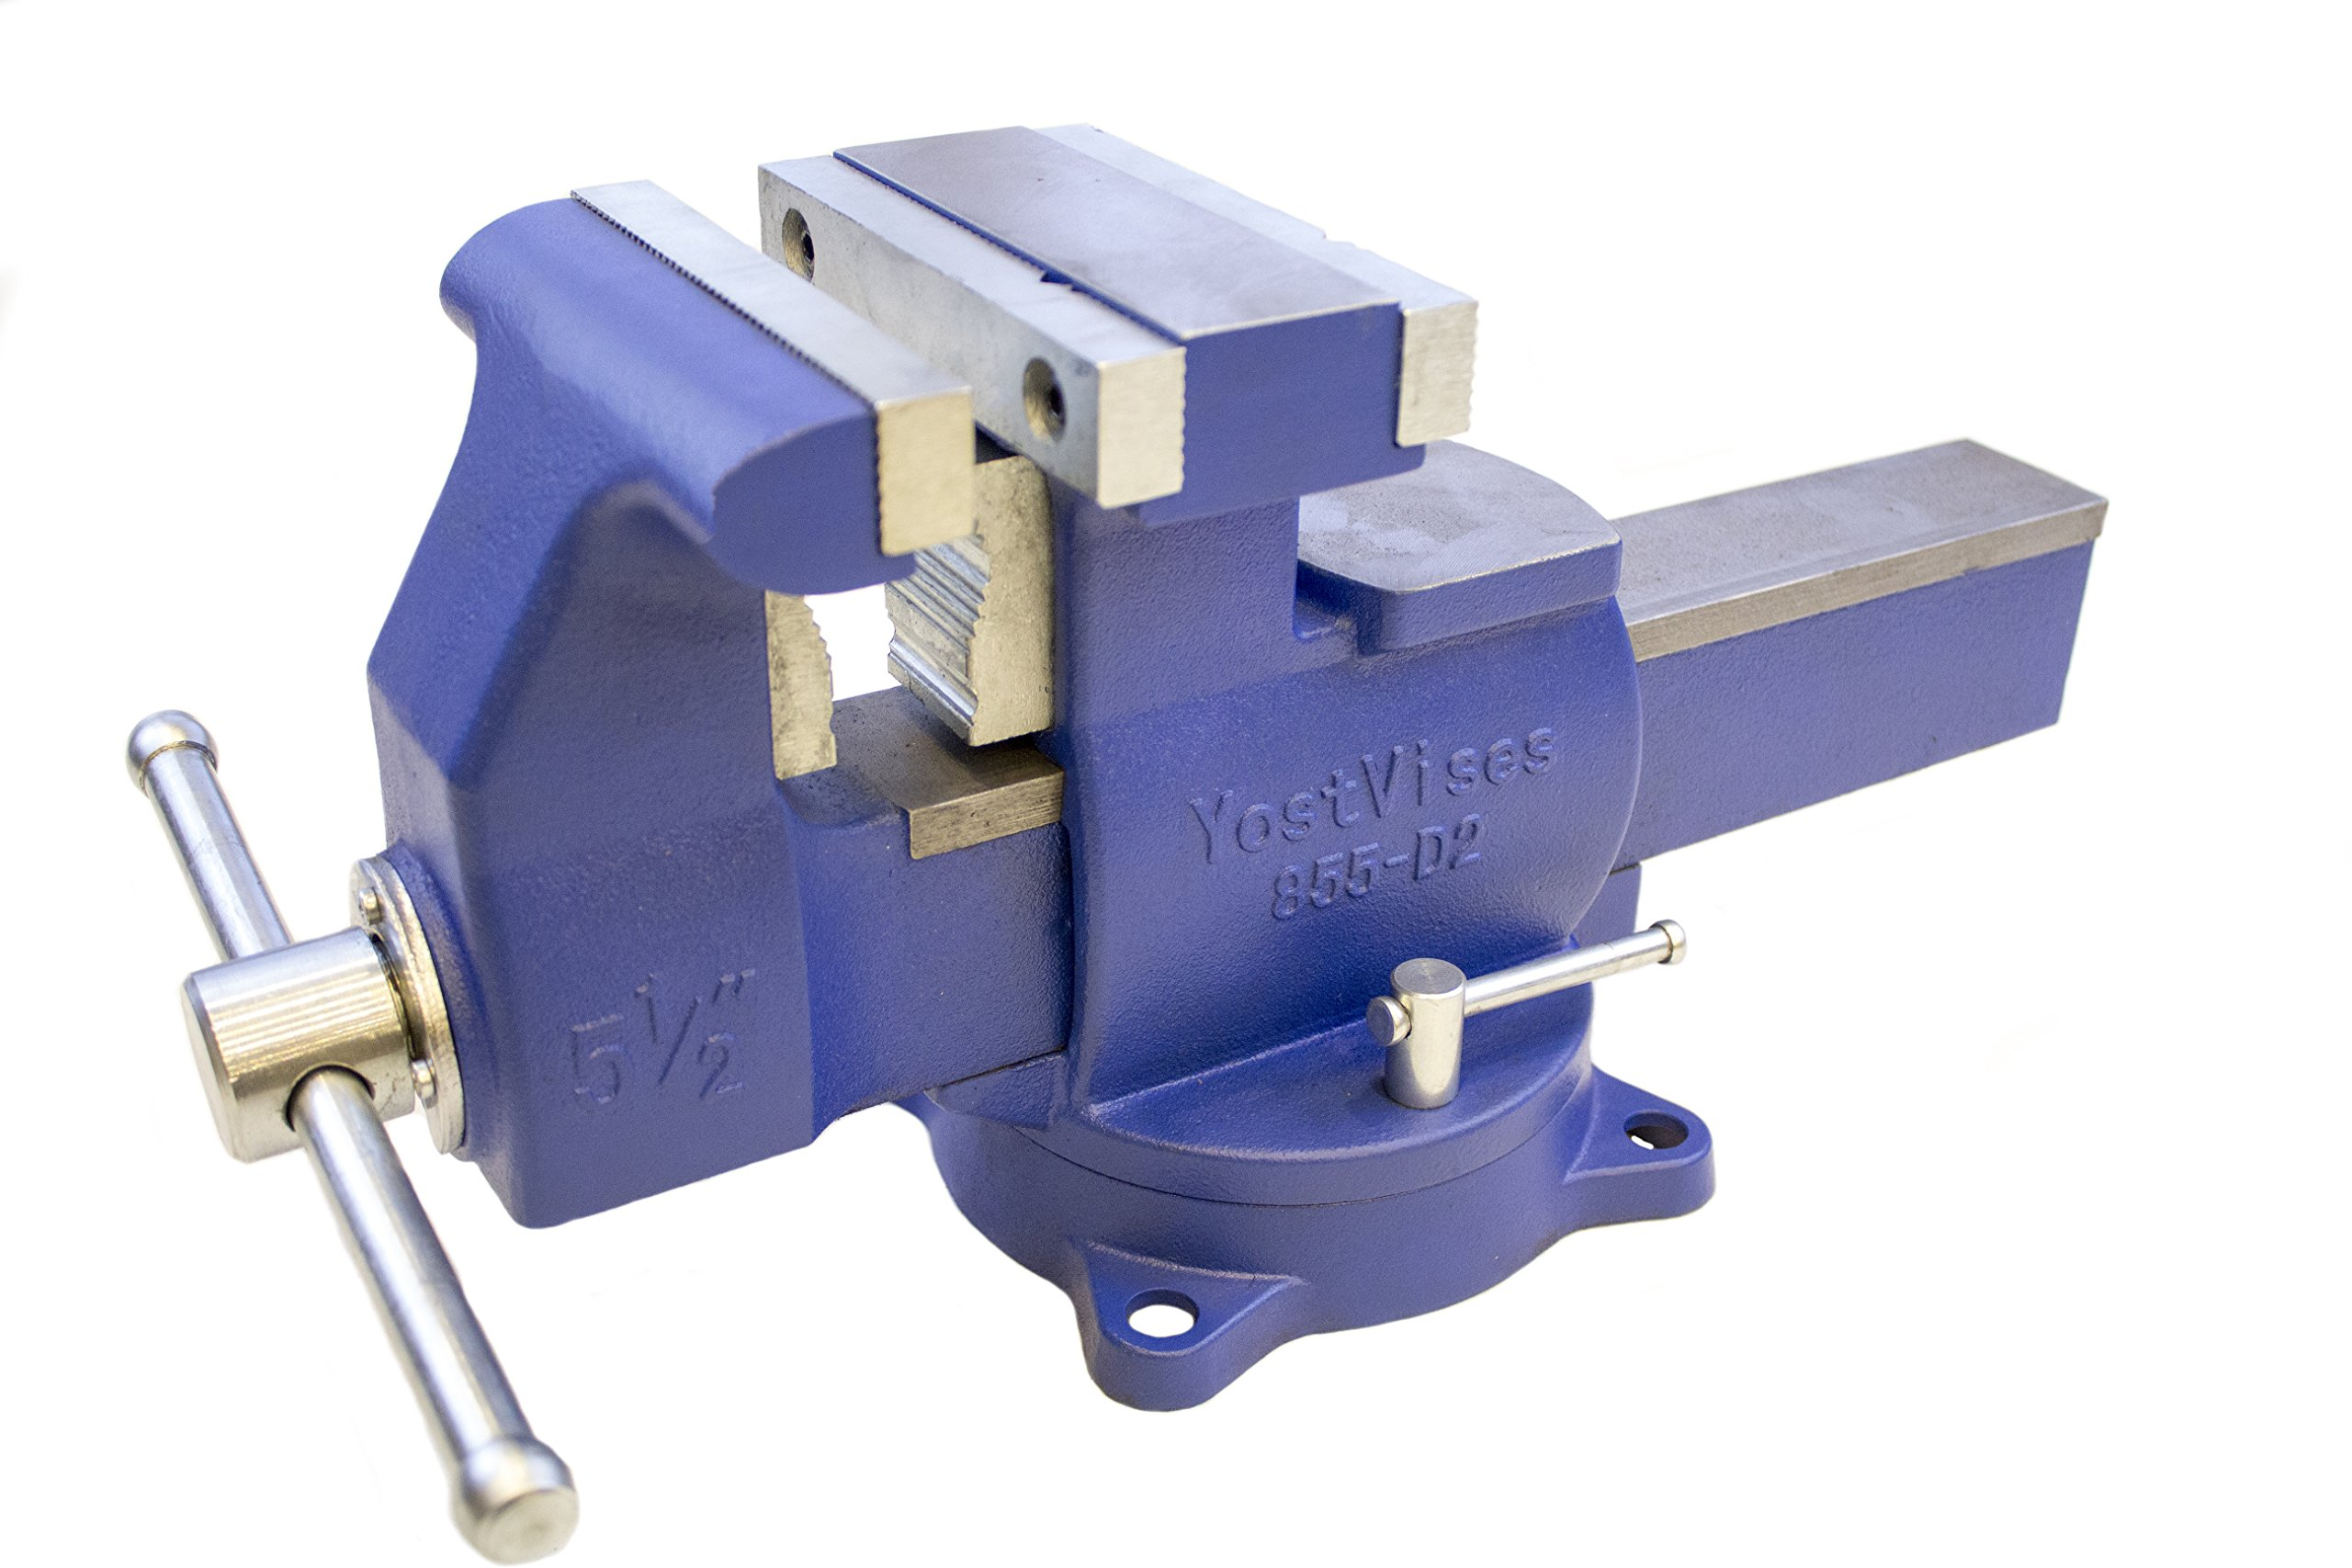 Yost 855-D2 Industrial Grade Reversible Vise by Yost Tools